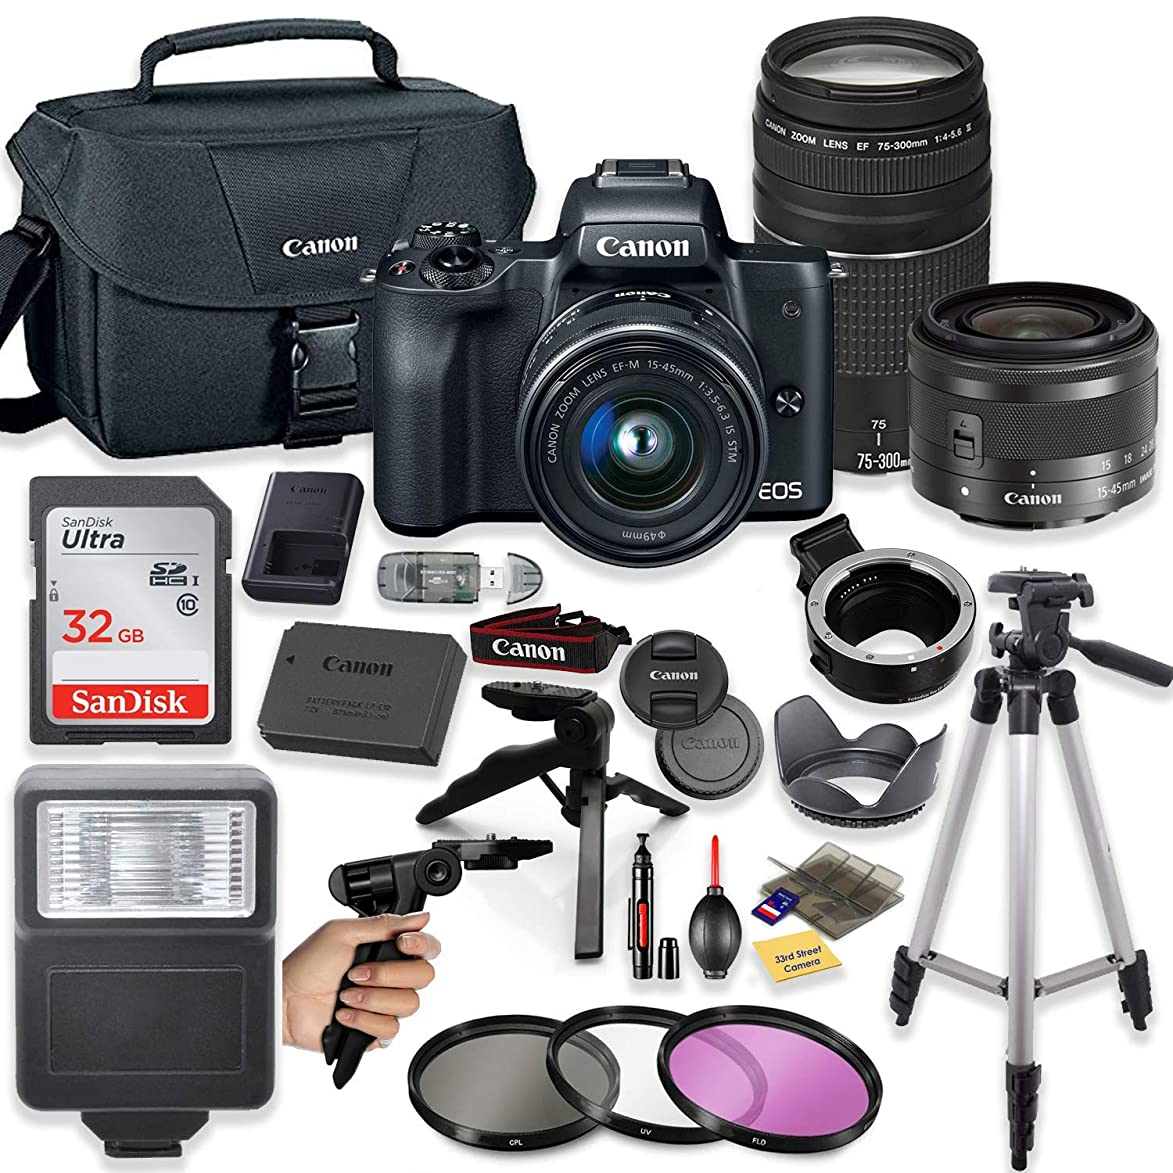 Canon EOS M50 Mirrorless Digital Camera (Black) with EF-M 15-45mm Lens & EF 75-300mm Lens + Pro Lens Mount Auto Adapter - EOS (EF/EF-S to EF-M Mount) + Deluxe Accessory Bundle